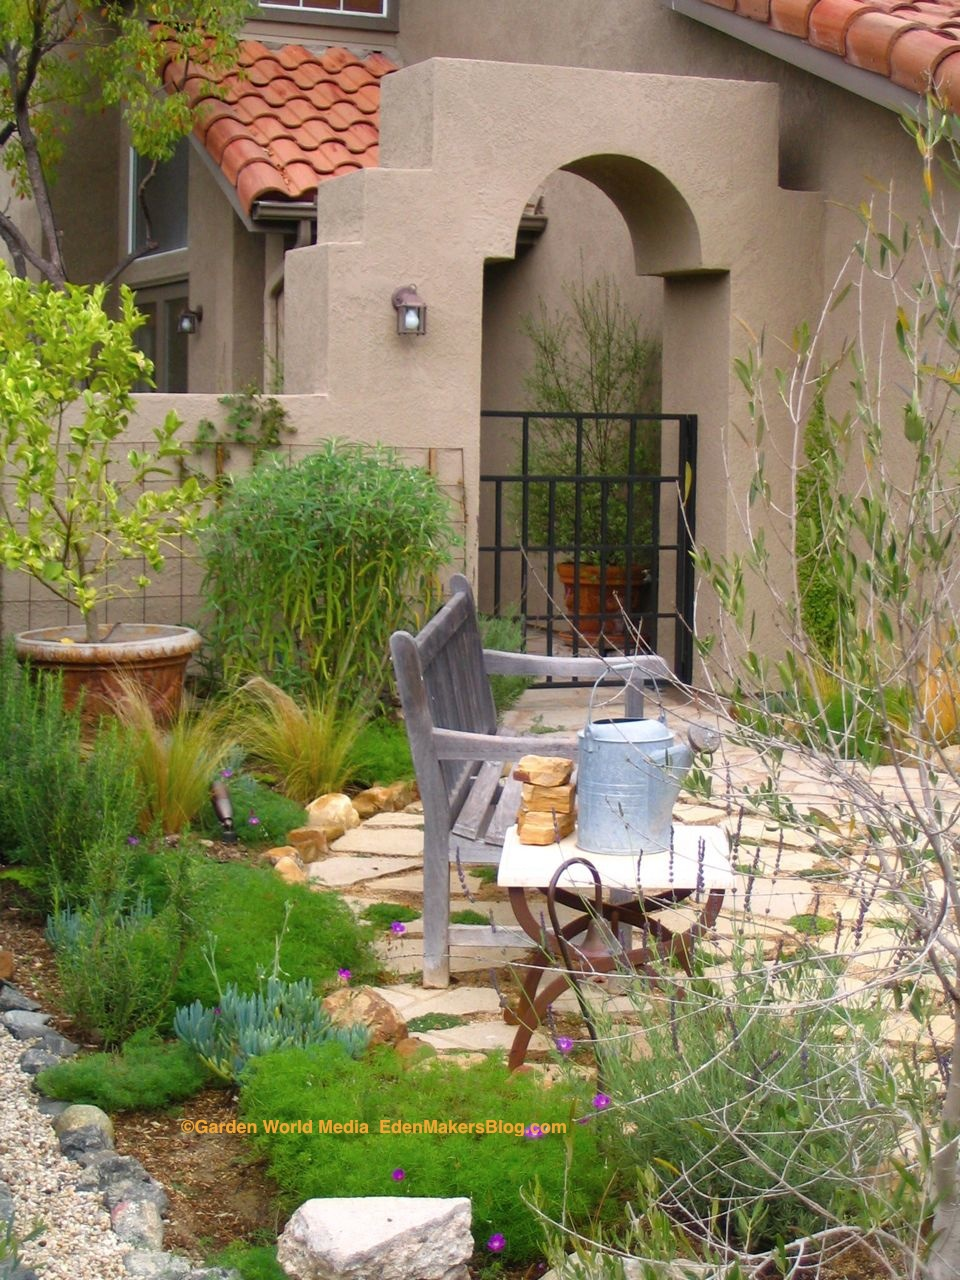 No Grass Backyard Design : Landscape Design Ideas Pictures Front Yard Mediterranean Style Images